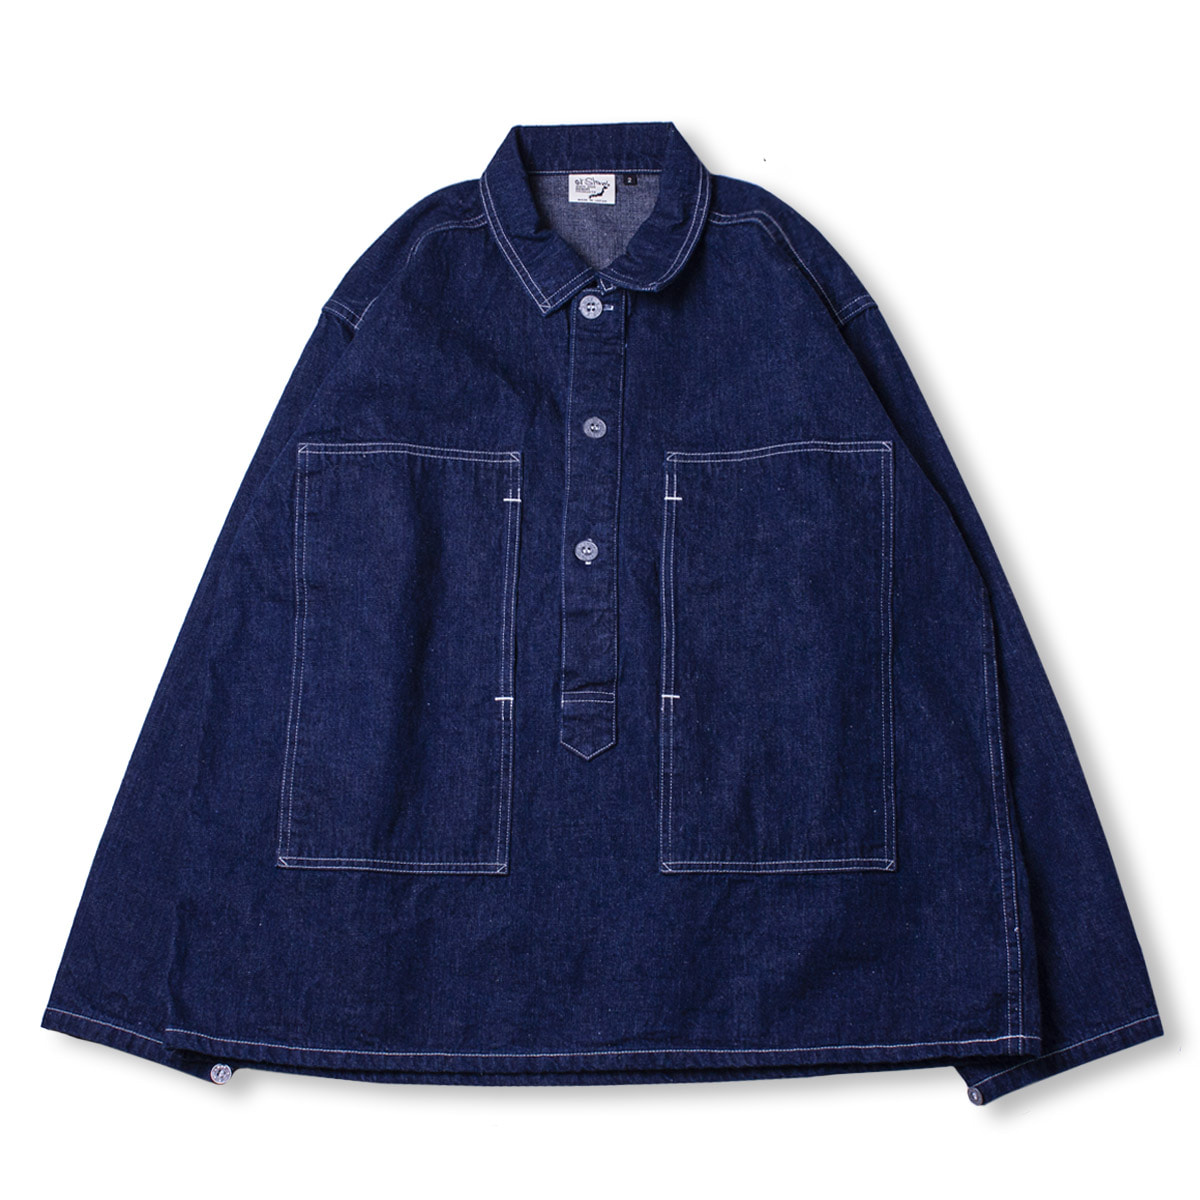 [ORSLOW] PW PULLOVER SHIIRT JACKET 'ONE WASH'